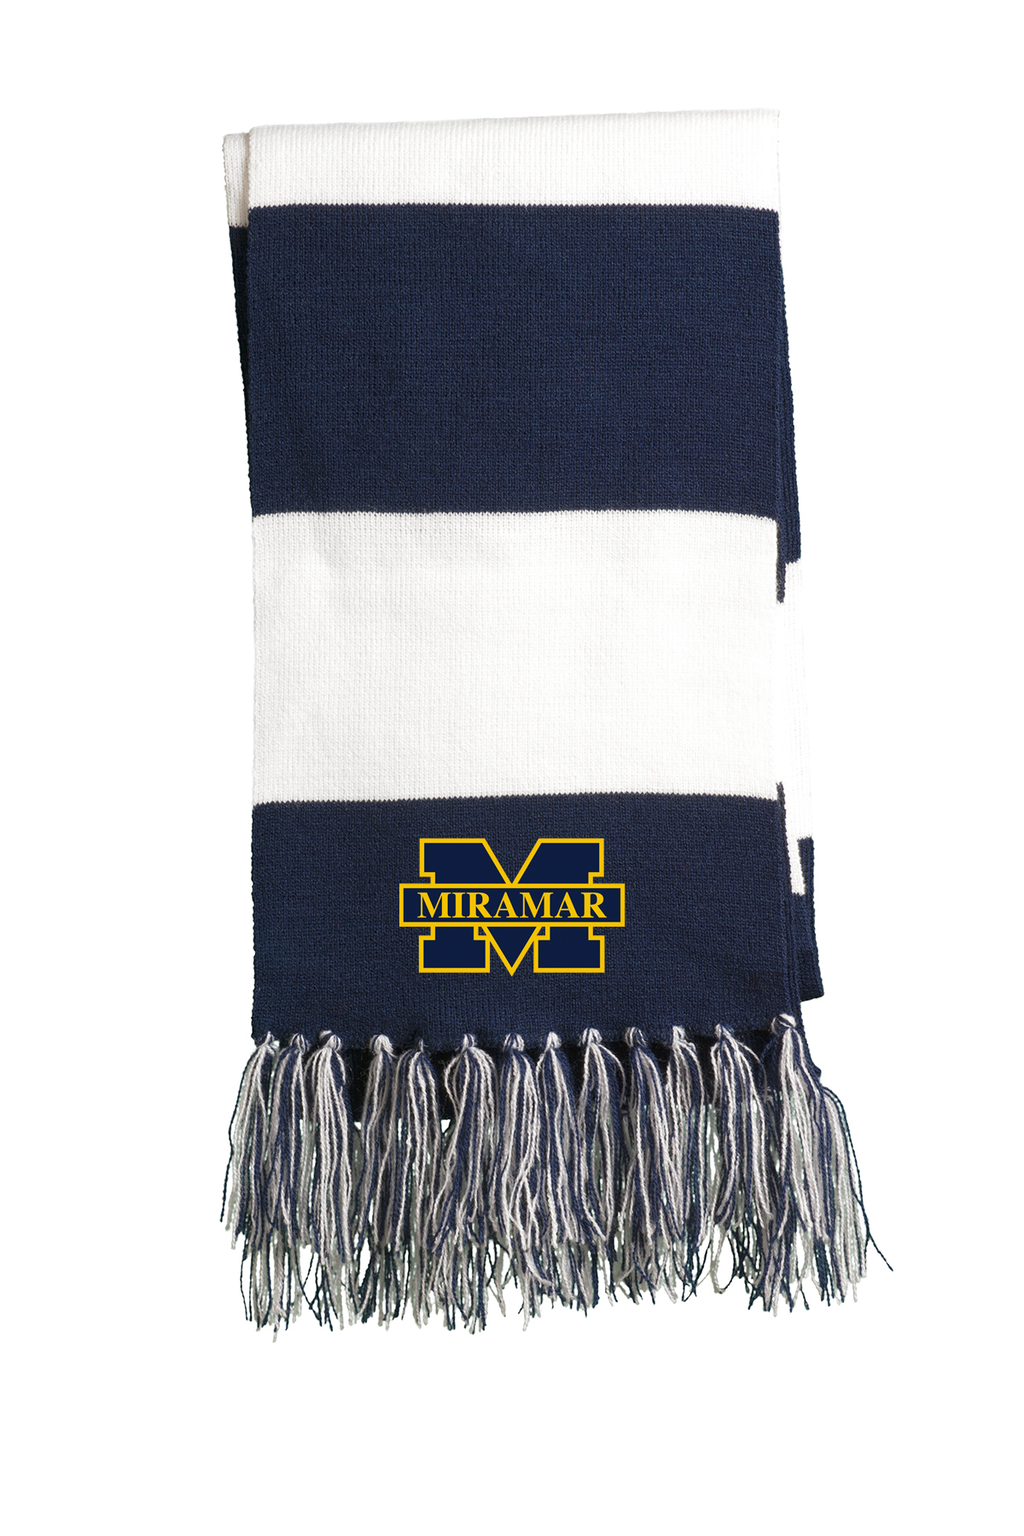 Miramar Wolverines Football Team Scarf